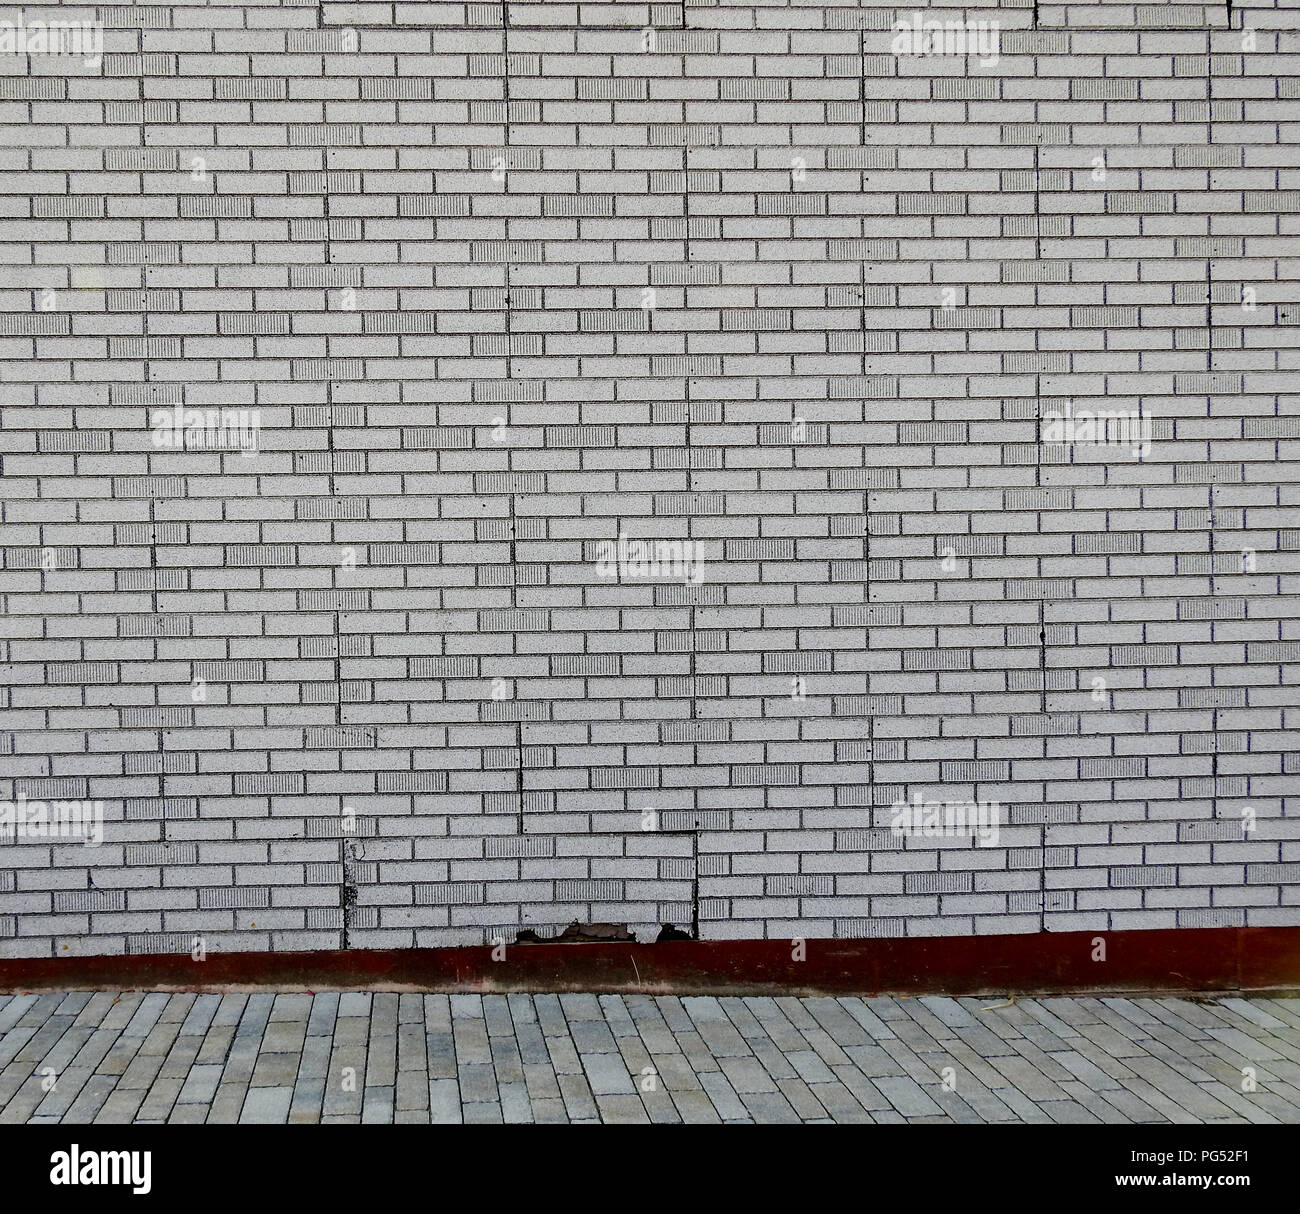 Sidewalk in front of a brick wall - Stock Image